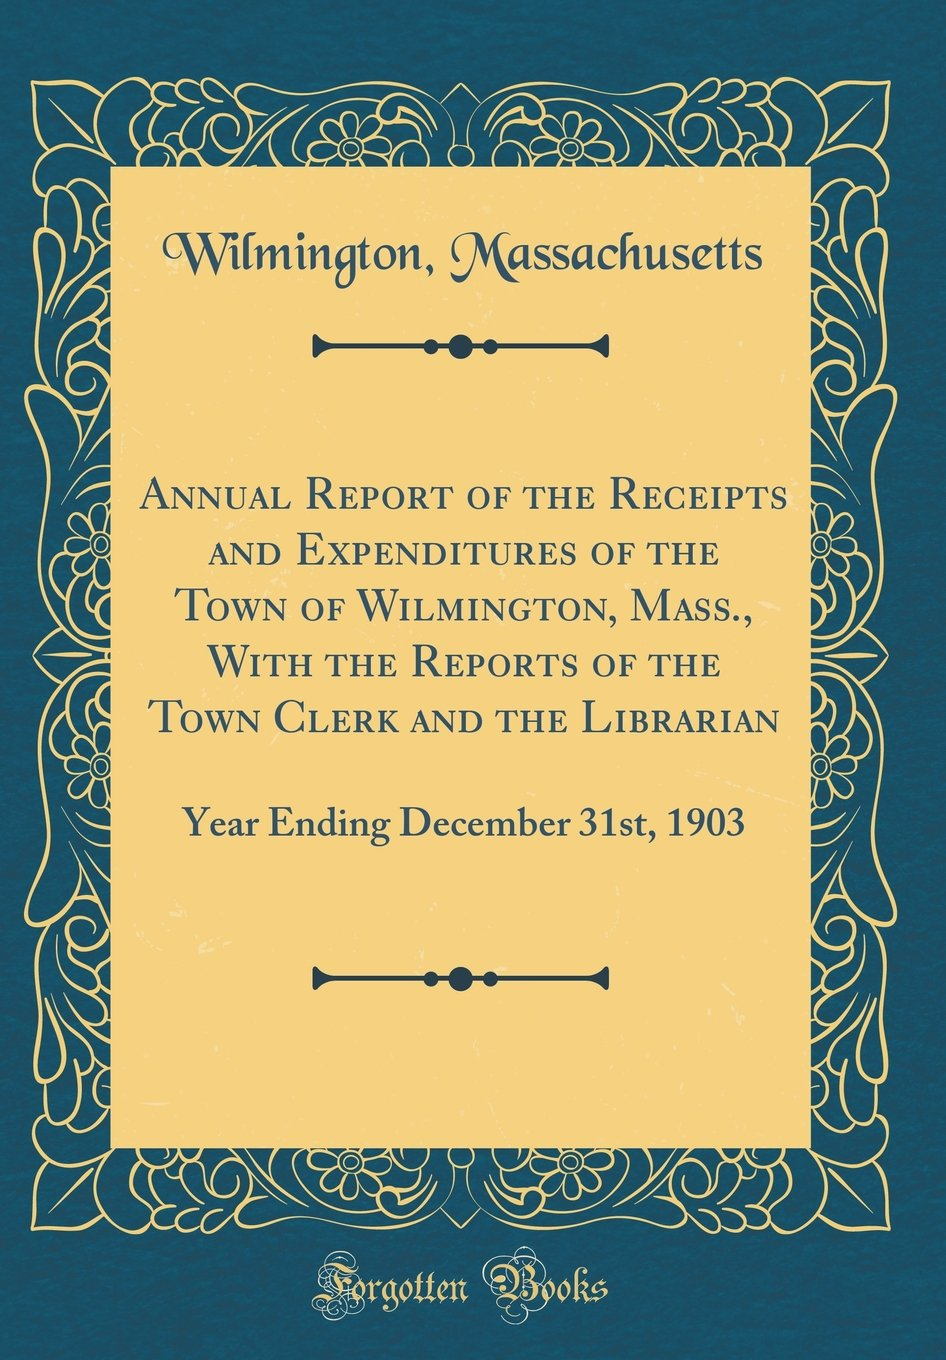 Download Annual Report of the Receipts and Expenditures of the Town of Wilmington, Mass., with the Reports of the Town Clerk and the Librarian: Year Ending December 31st, 1903 (Classic Reprint) pdf